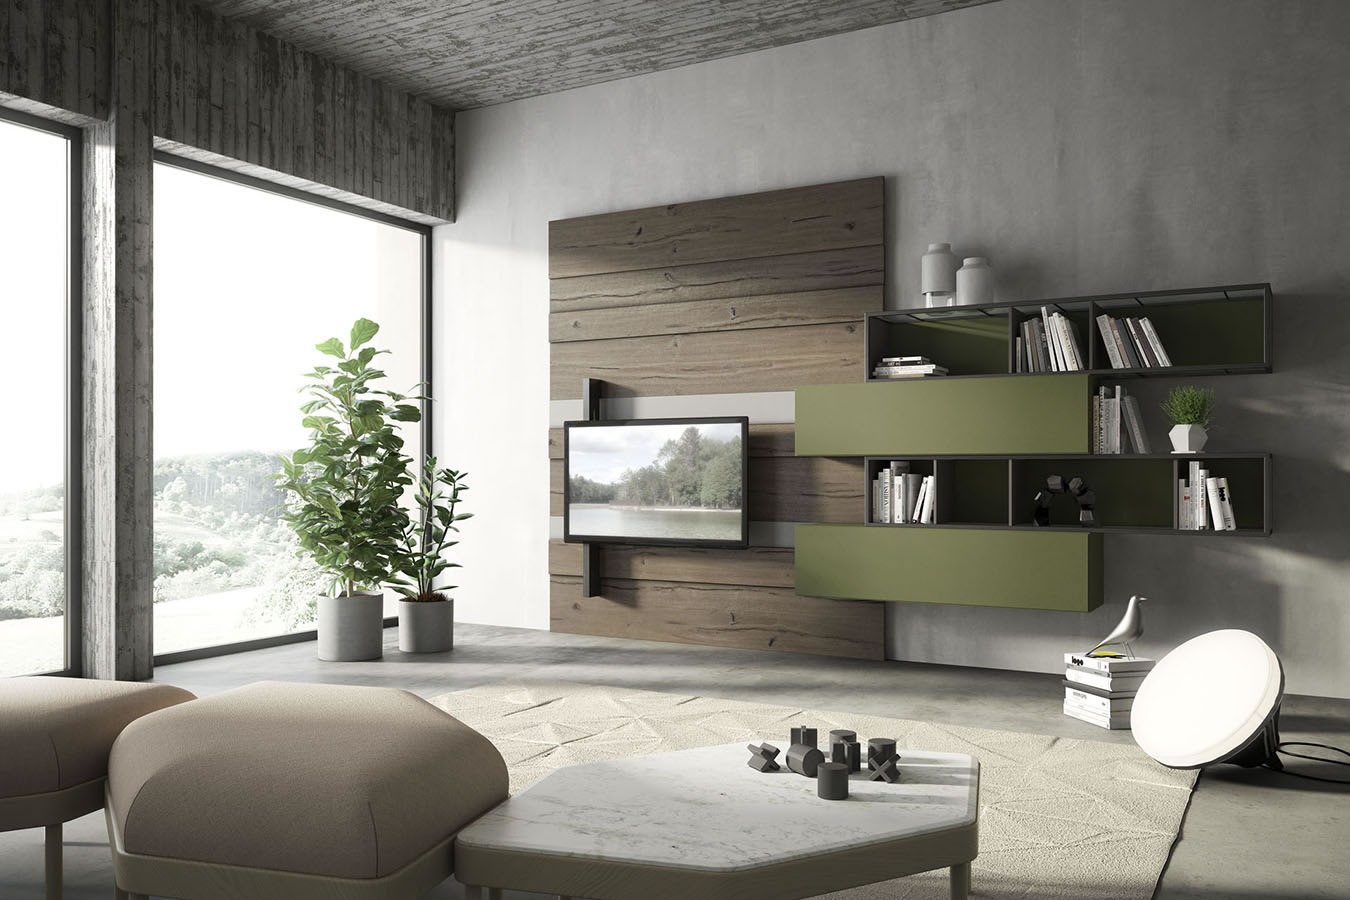 Momentoitalia italian furniture blog news from the 2016 for Idee arredamento soggiorno